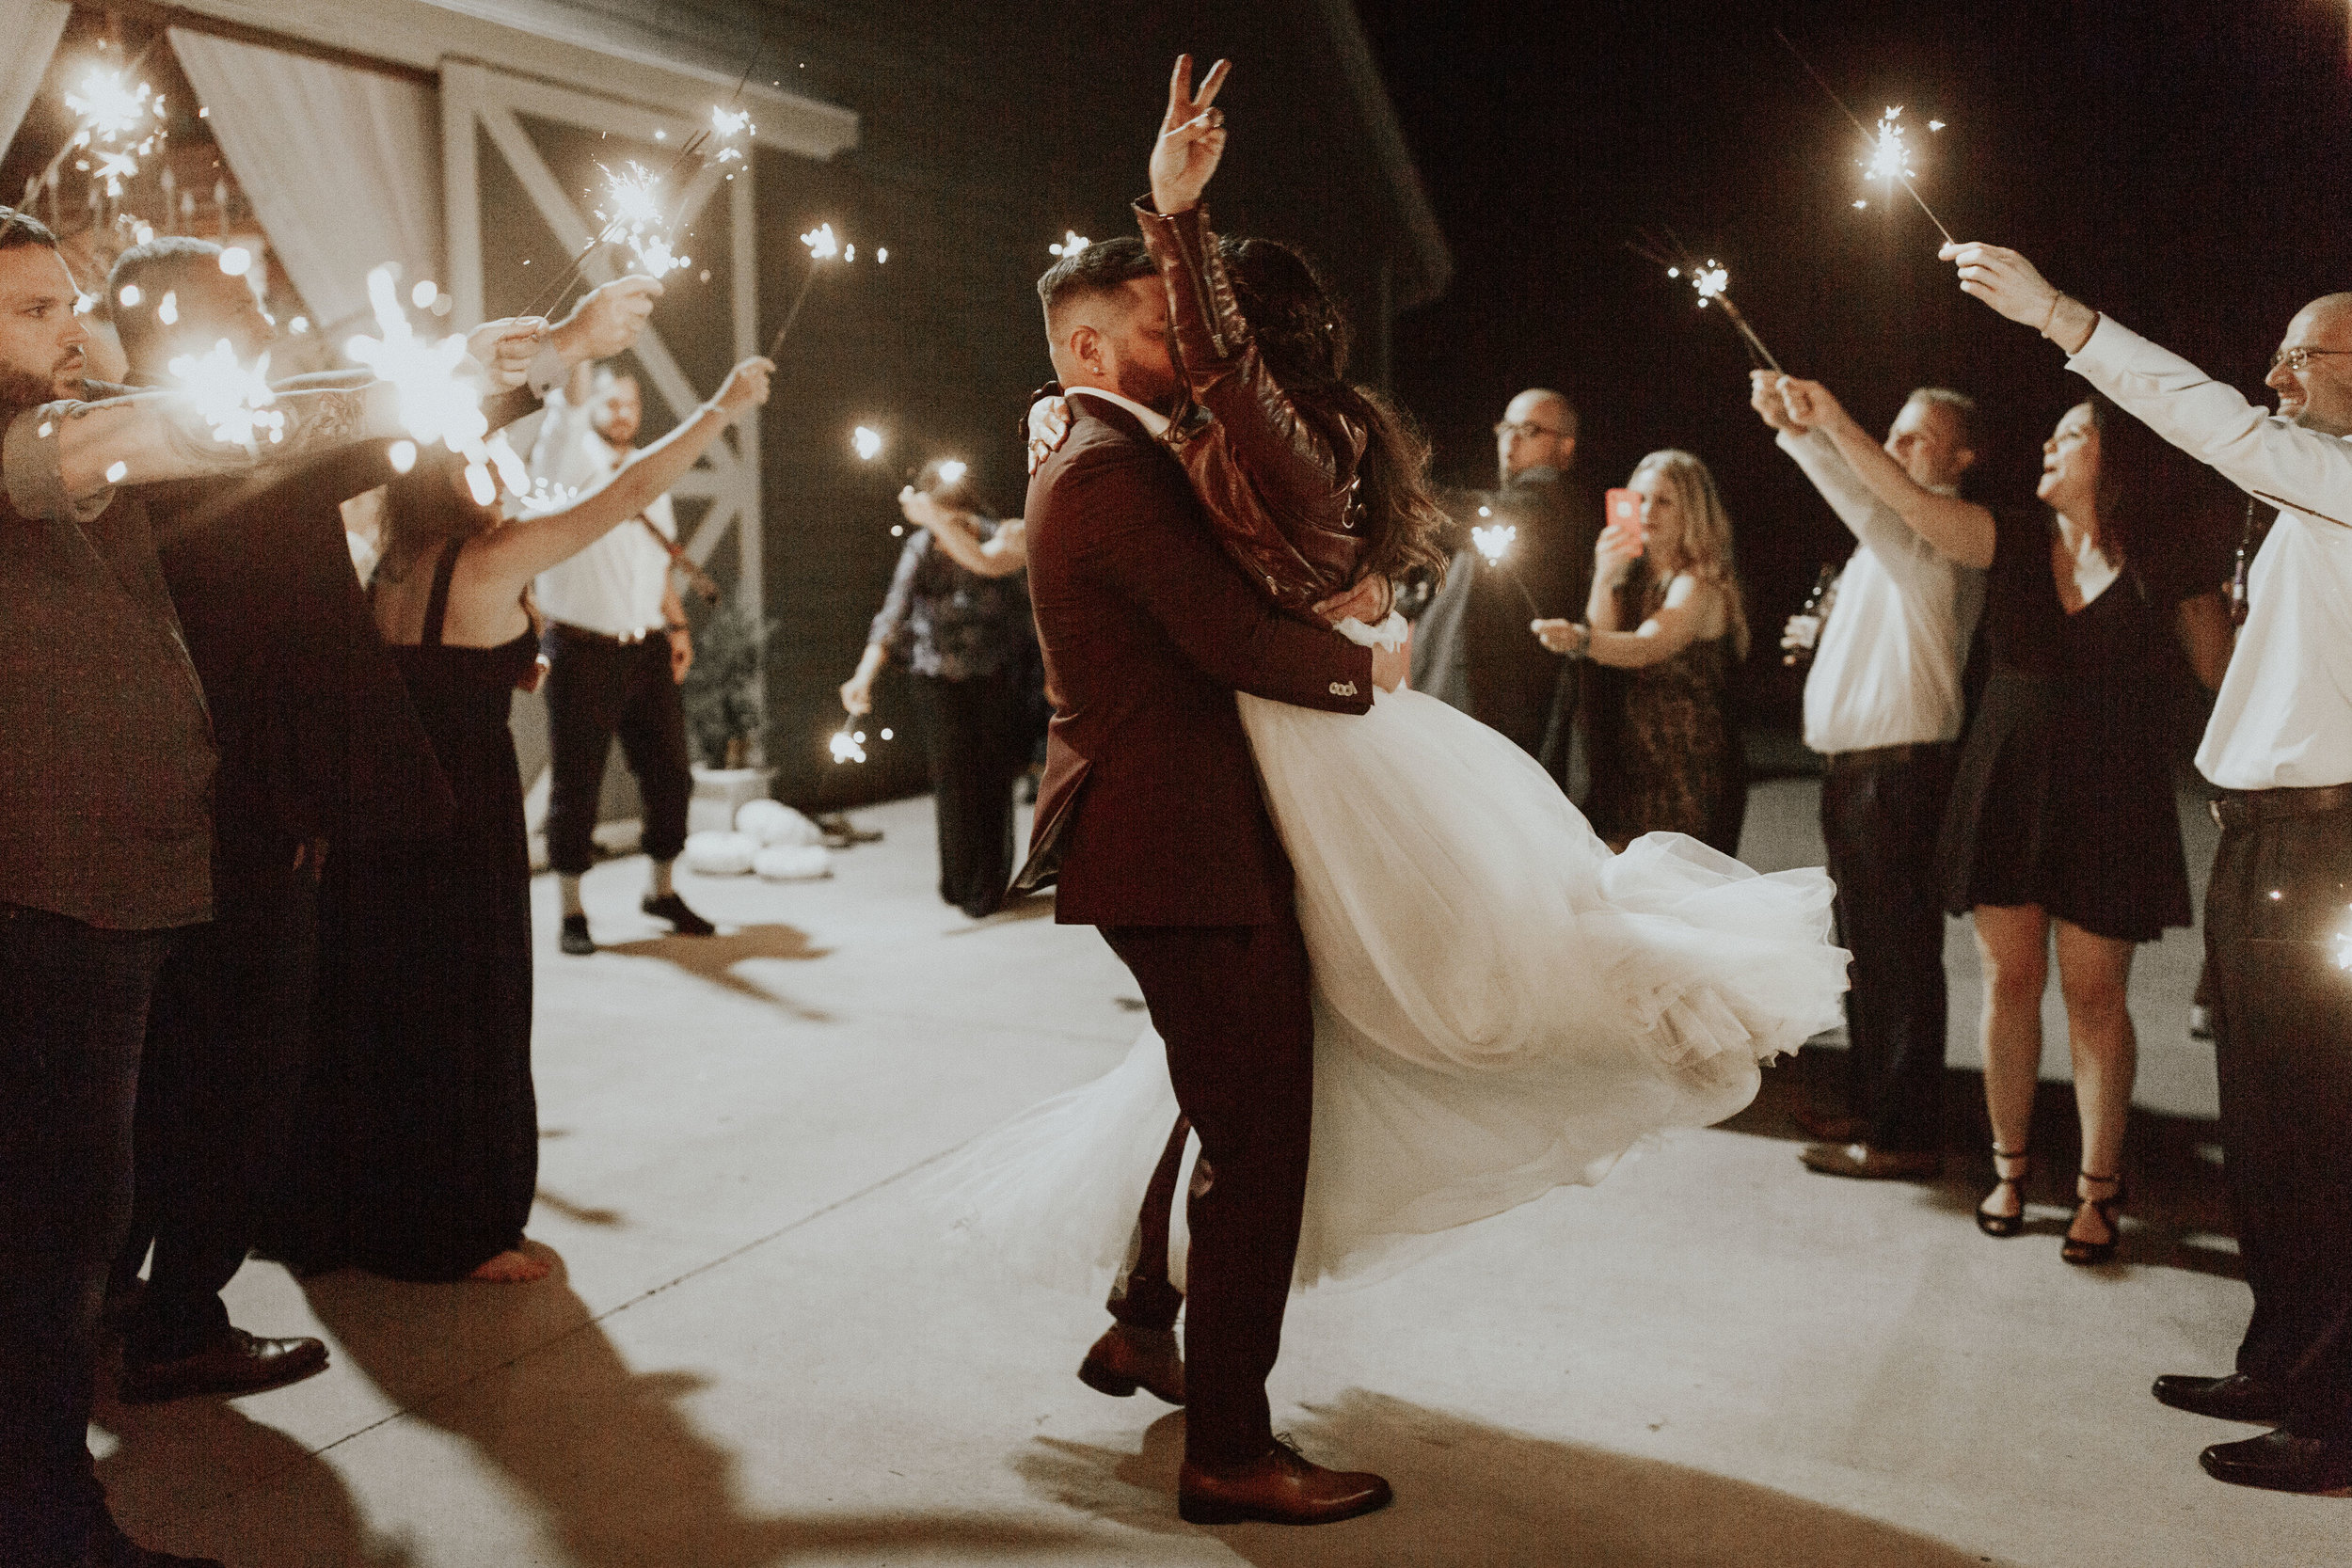 How To Be The Man, Not Just The Groom - Photo by Chelsea ReeceBy Chasen ShawChasen is a certified Wedding Entertainment Director and the owner of PartyBox. He and his wife Leslee Layton are the founders of Let's Revel.